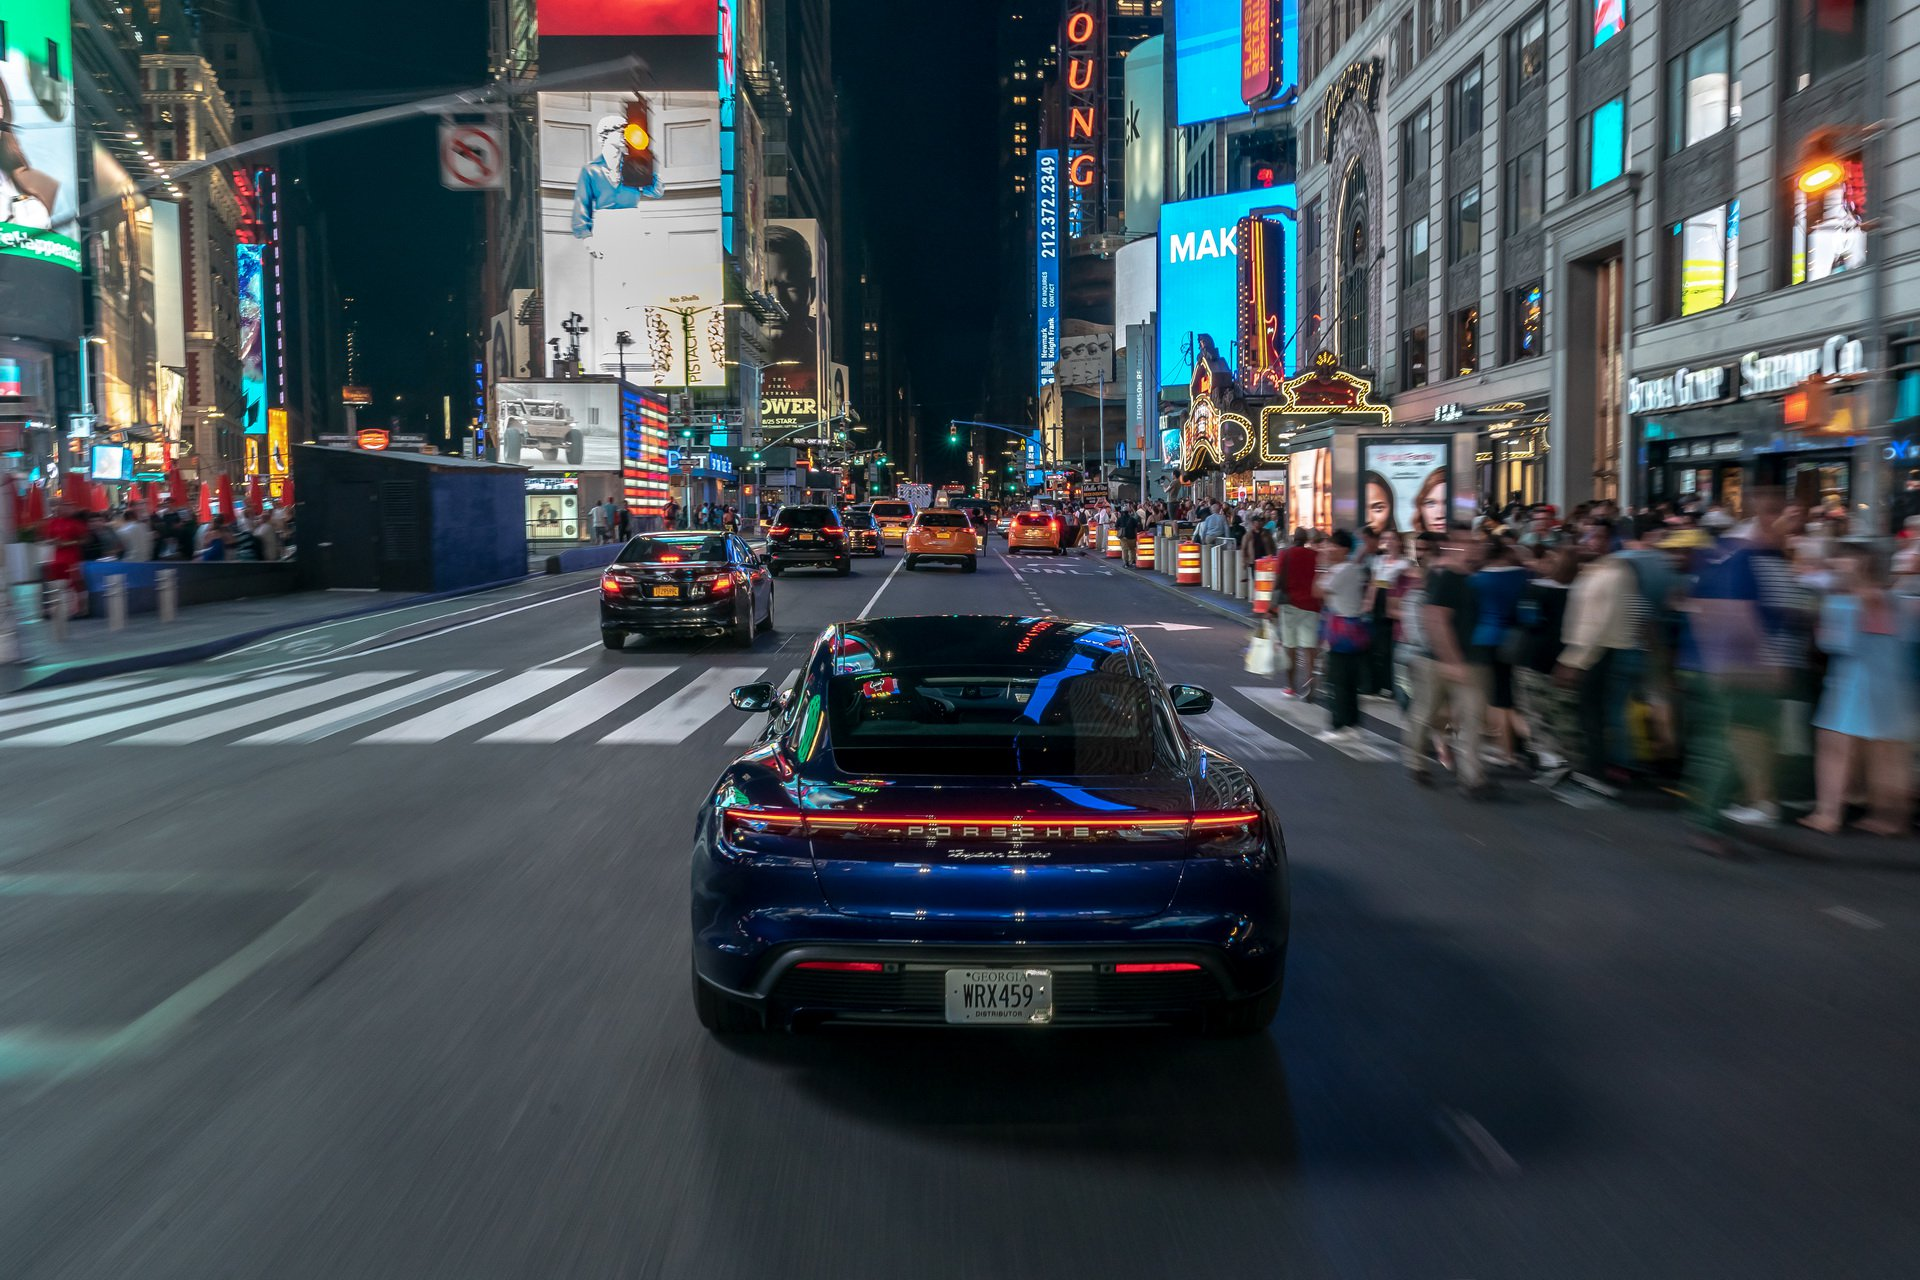 Porsche-Taycan-Niagara-Falls-to-New-York-6